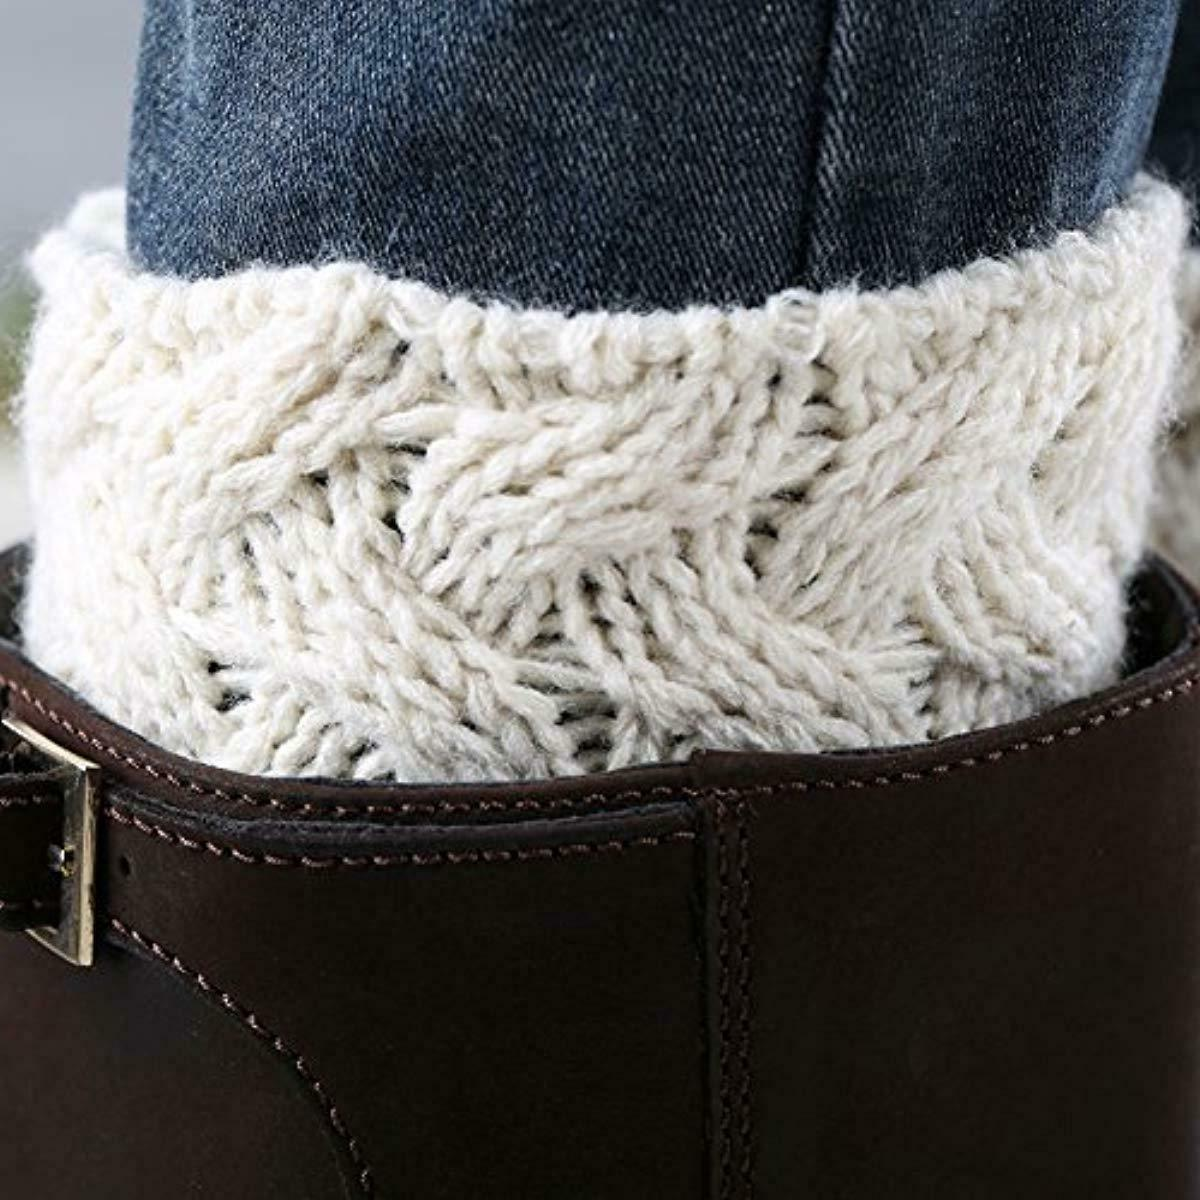 FAYBOX Crochet Cable Knit